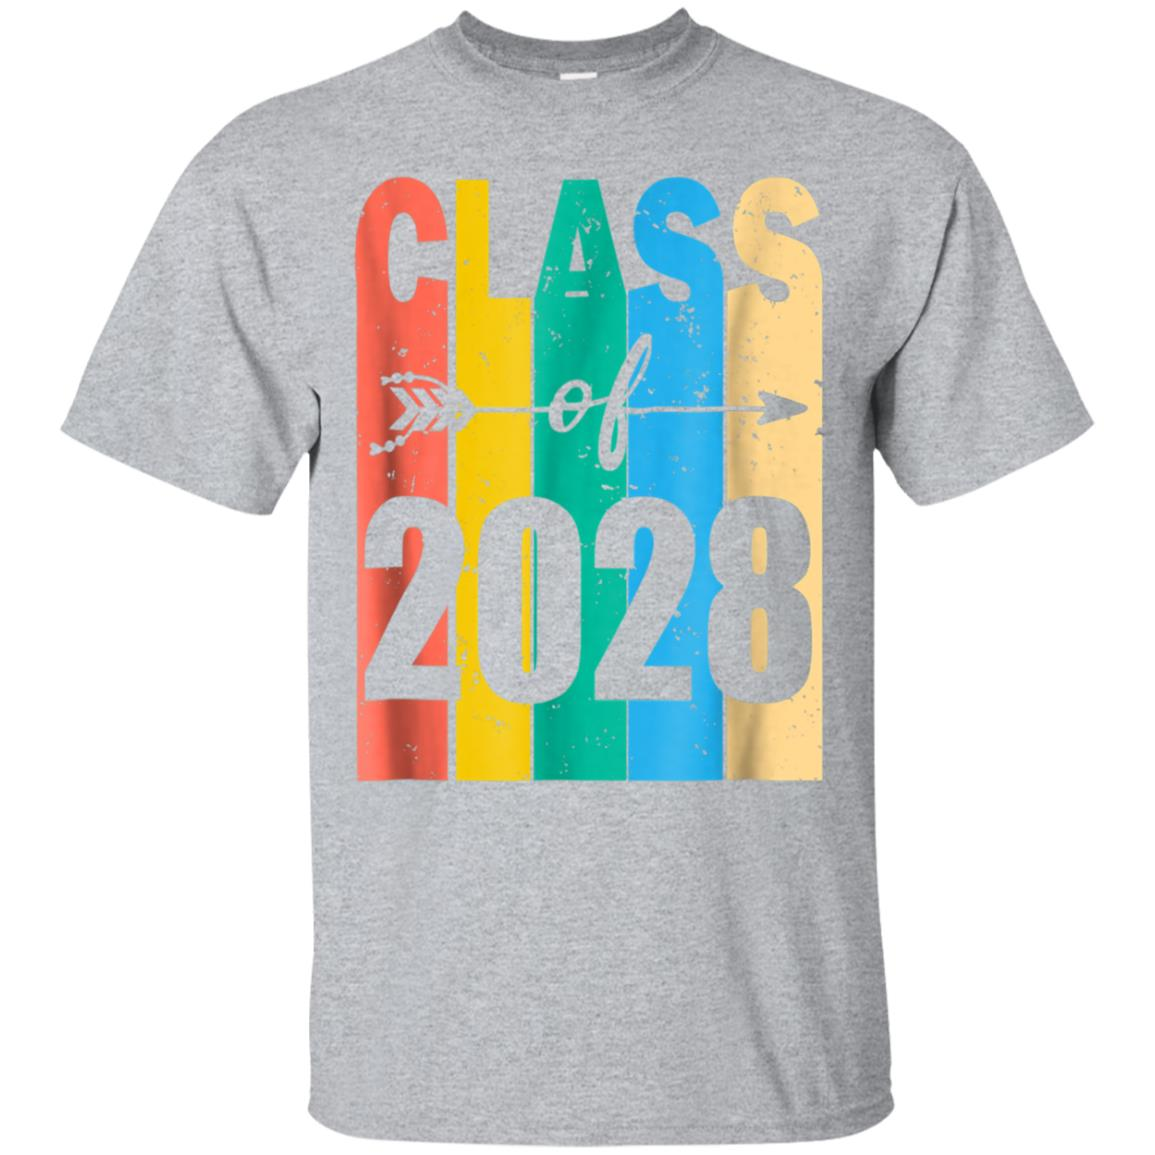 Retro Class of 2028 T Shirt 3rd Grade Back to School Tee 99promocode